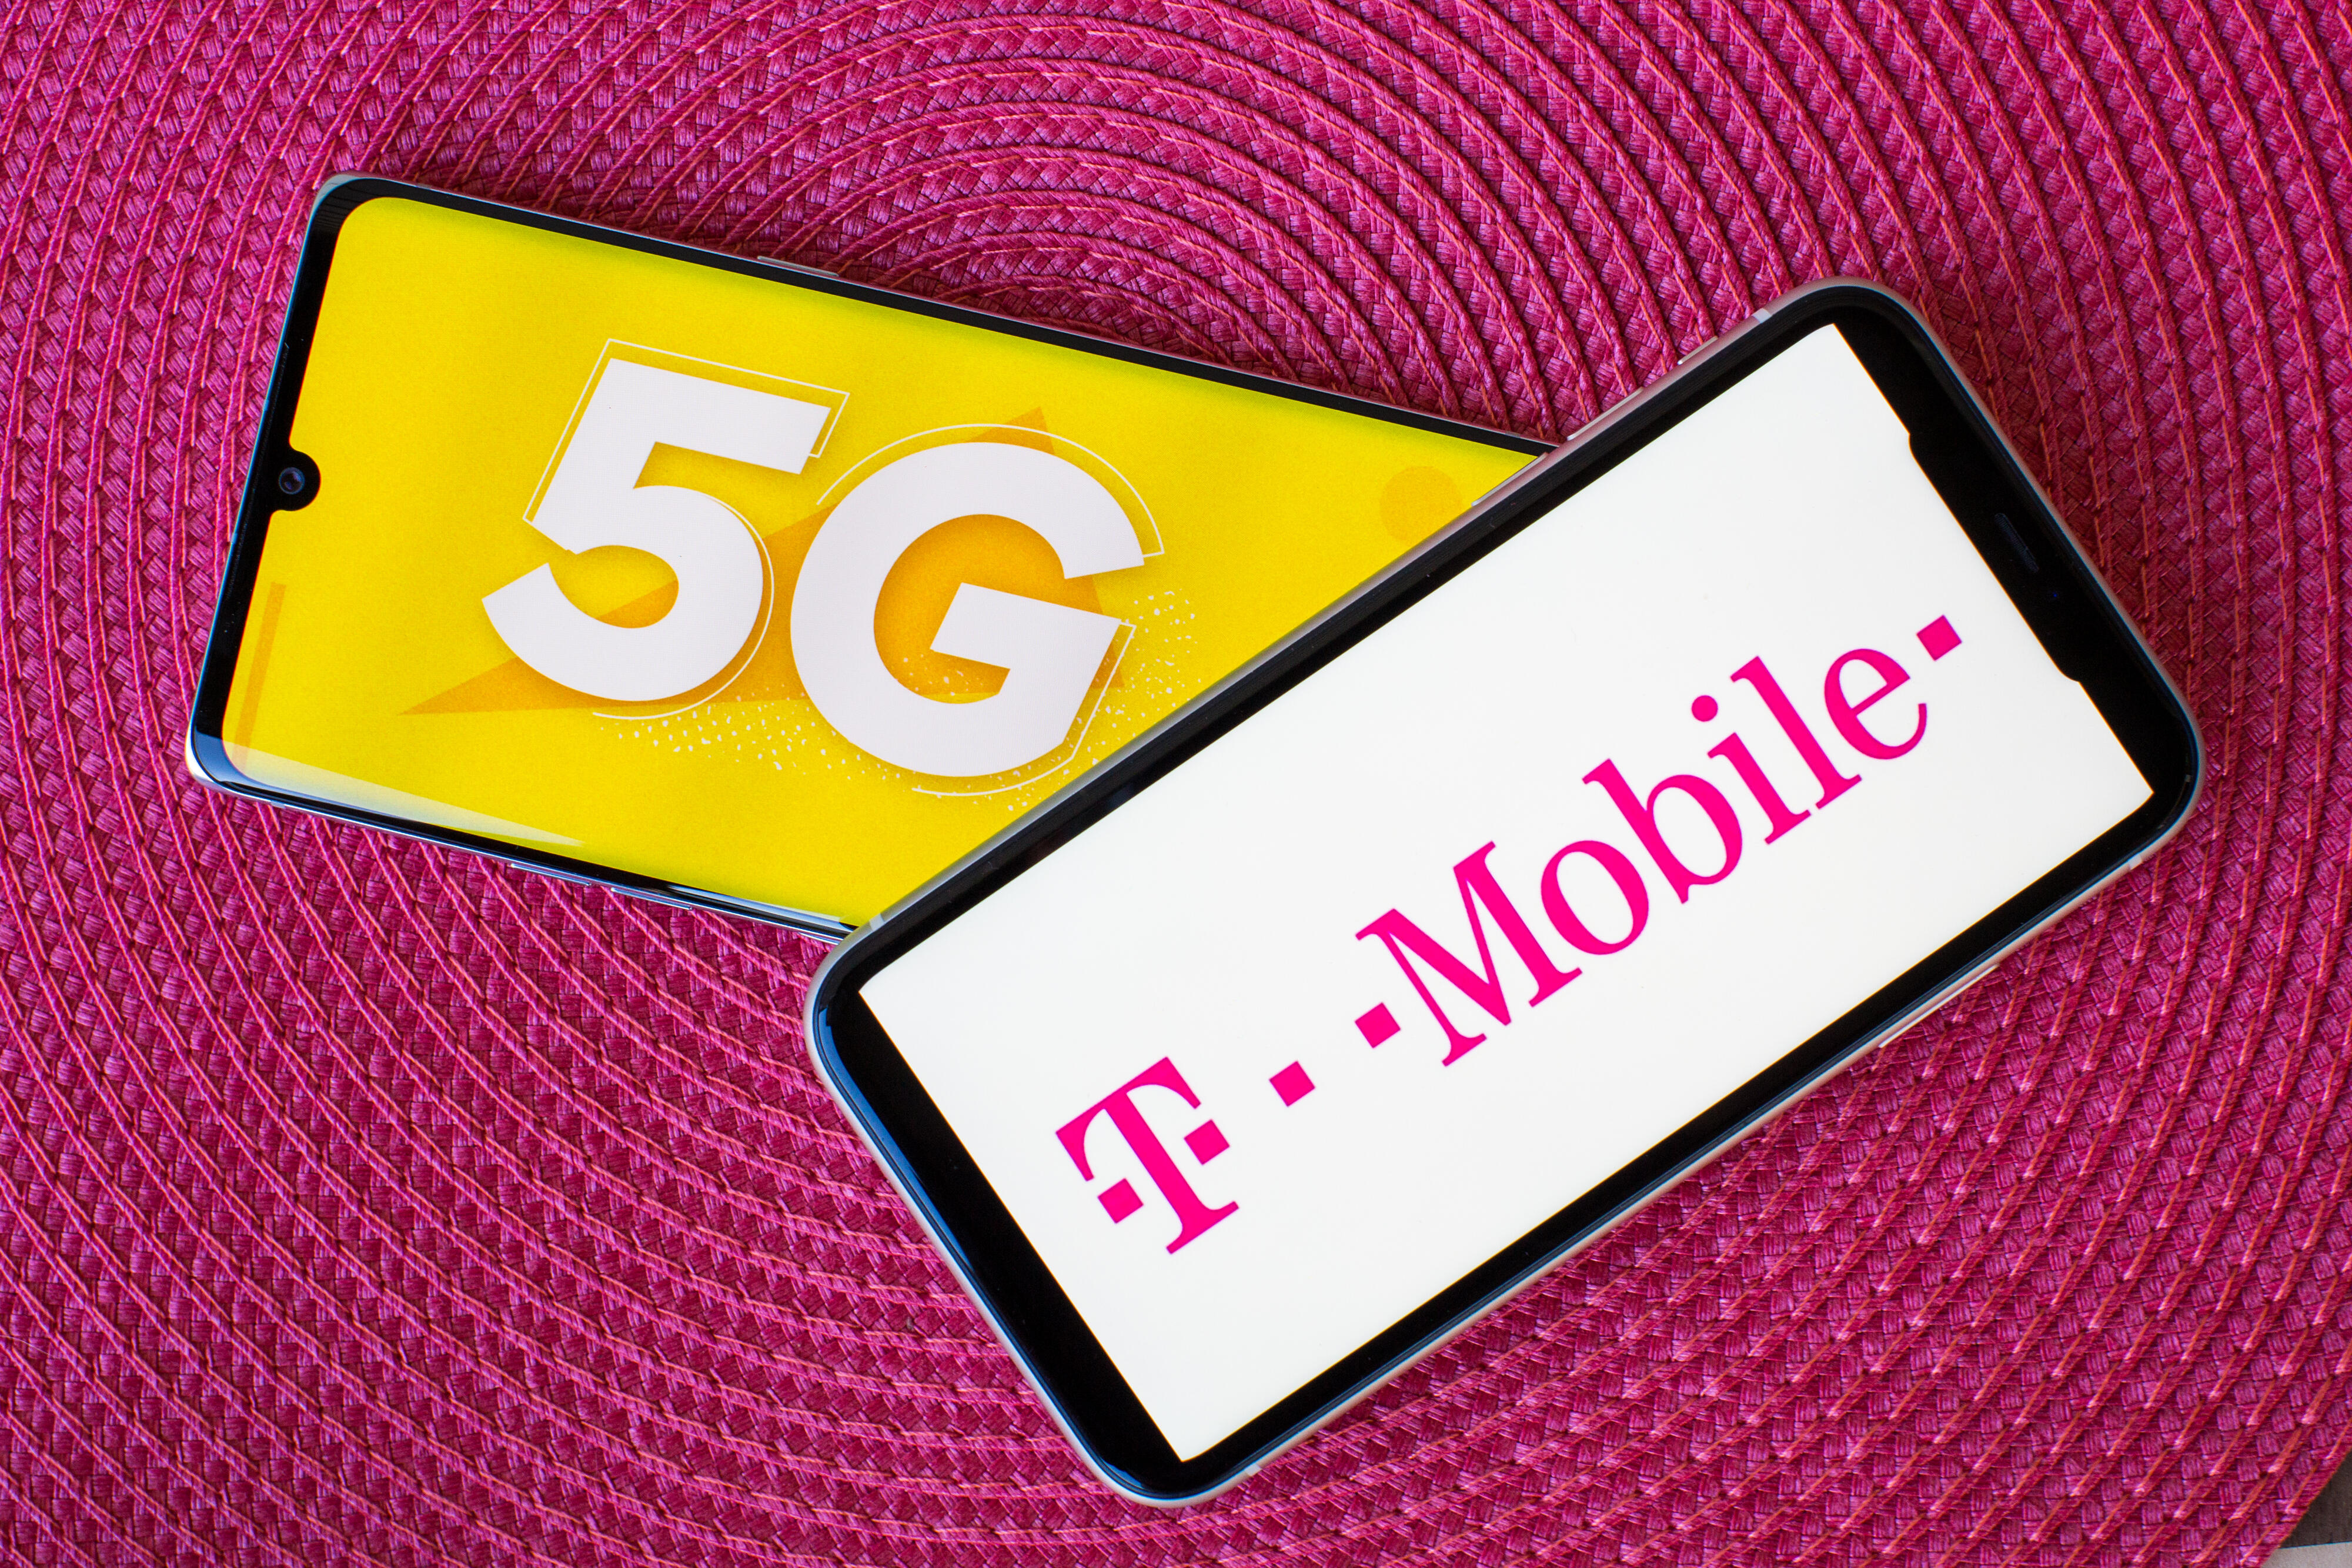 tmobile-5g-logo-phone-4340